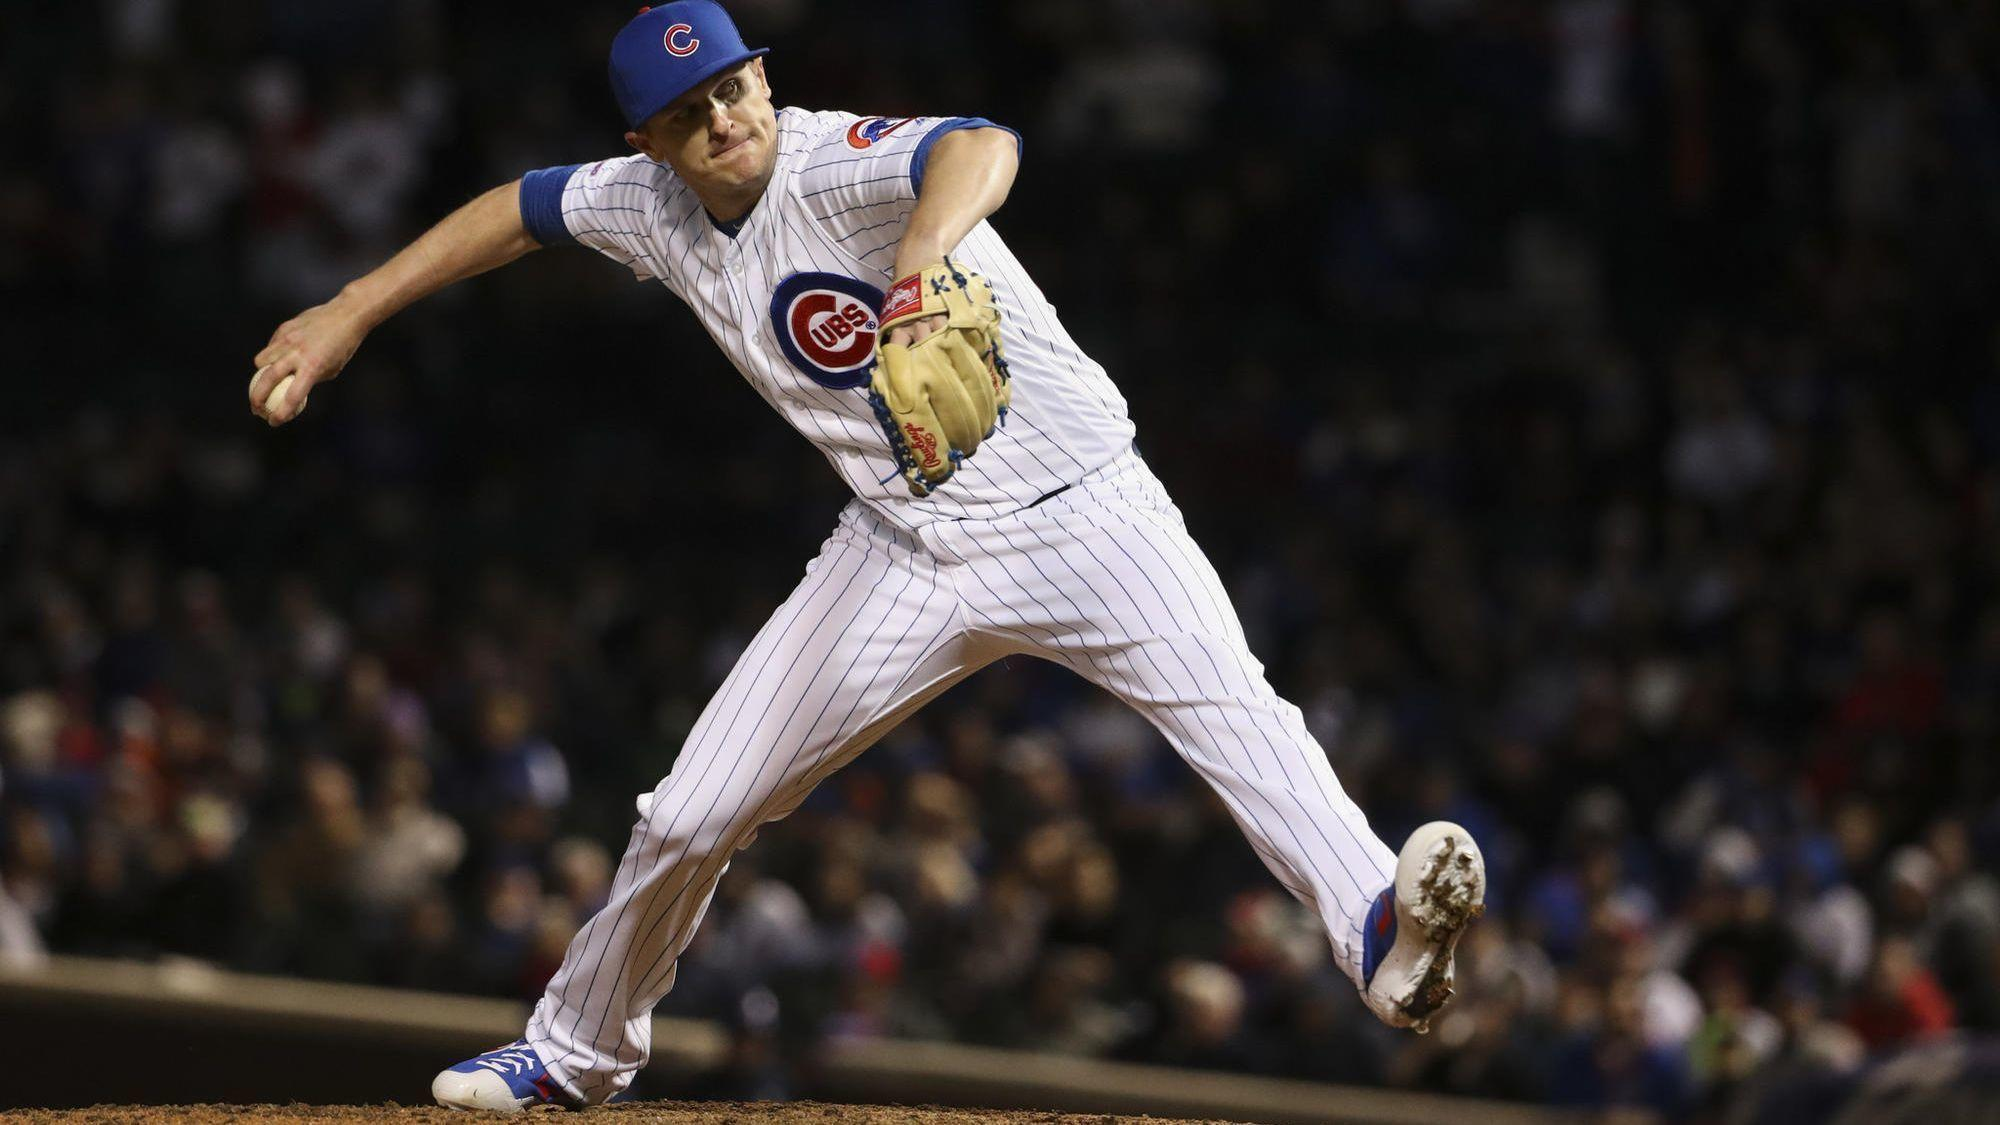 The Cubs have 2 wishes for June: nicer weather and a more consistent bullpen